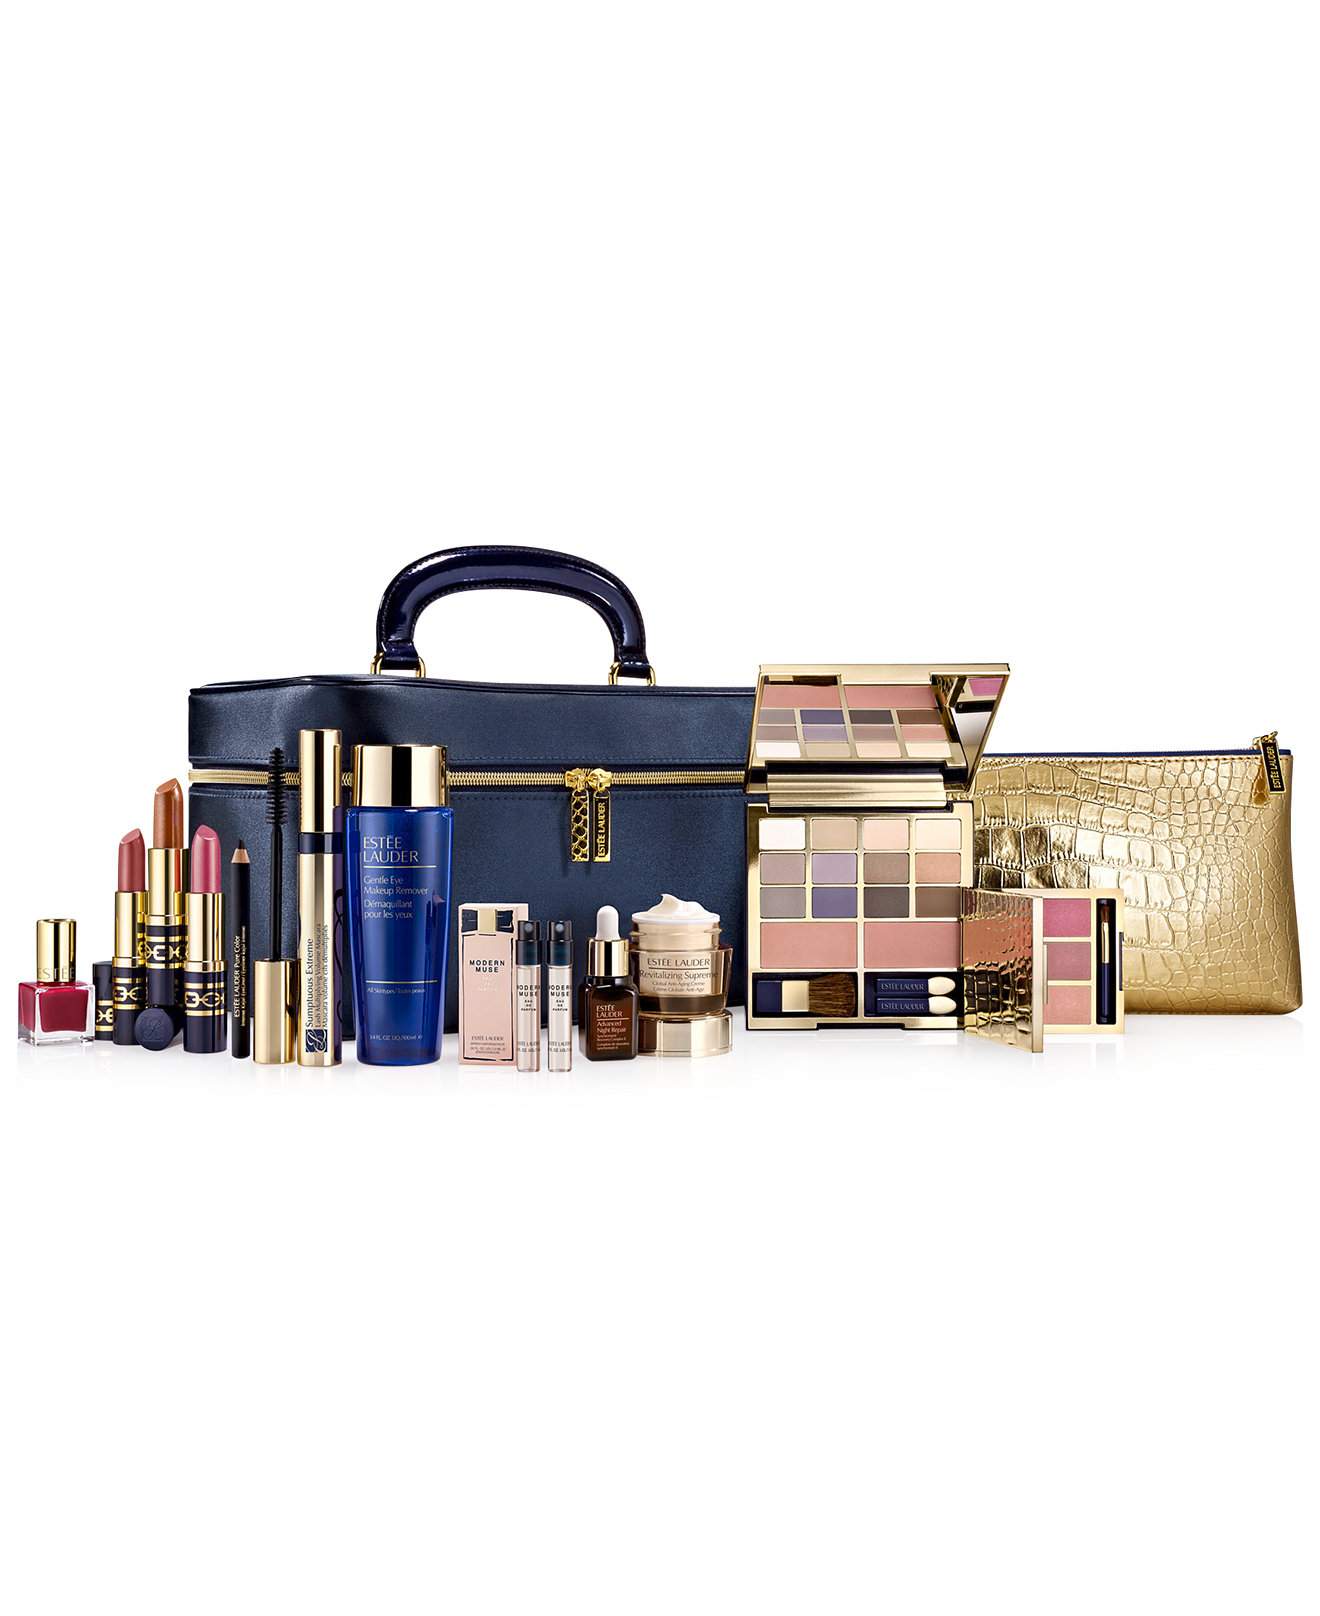 estee lauder holiday blockbuster 2014 | Our Lovely World